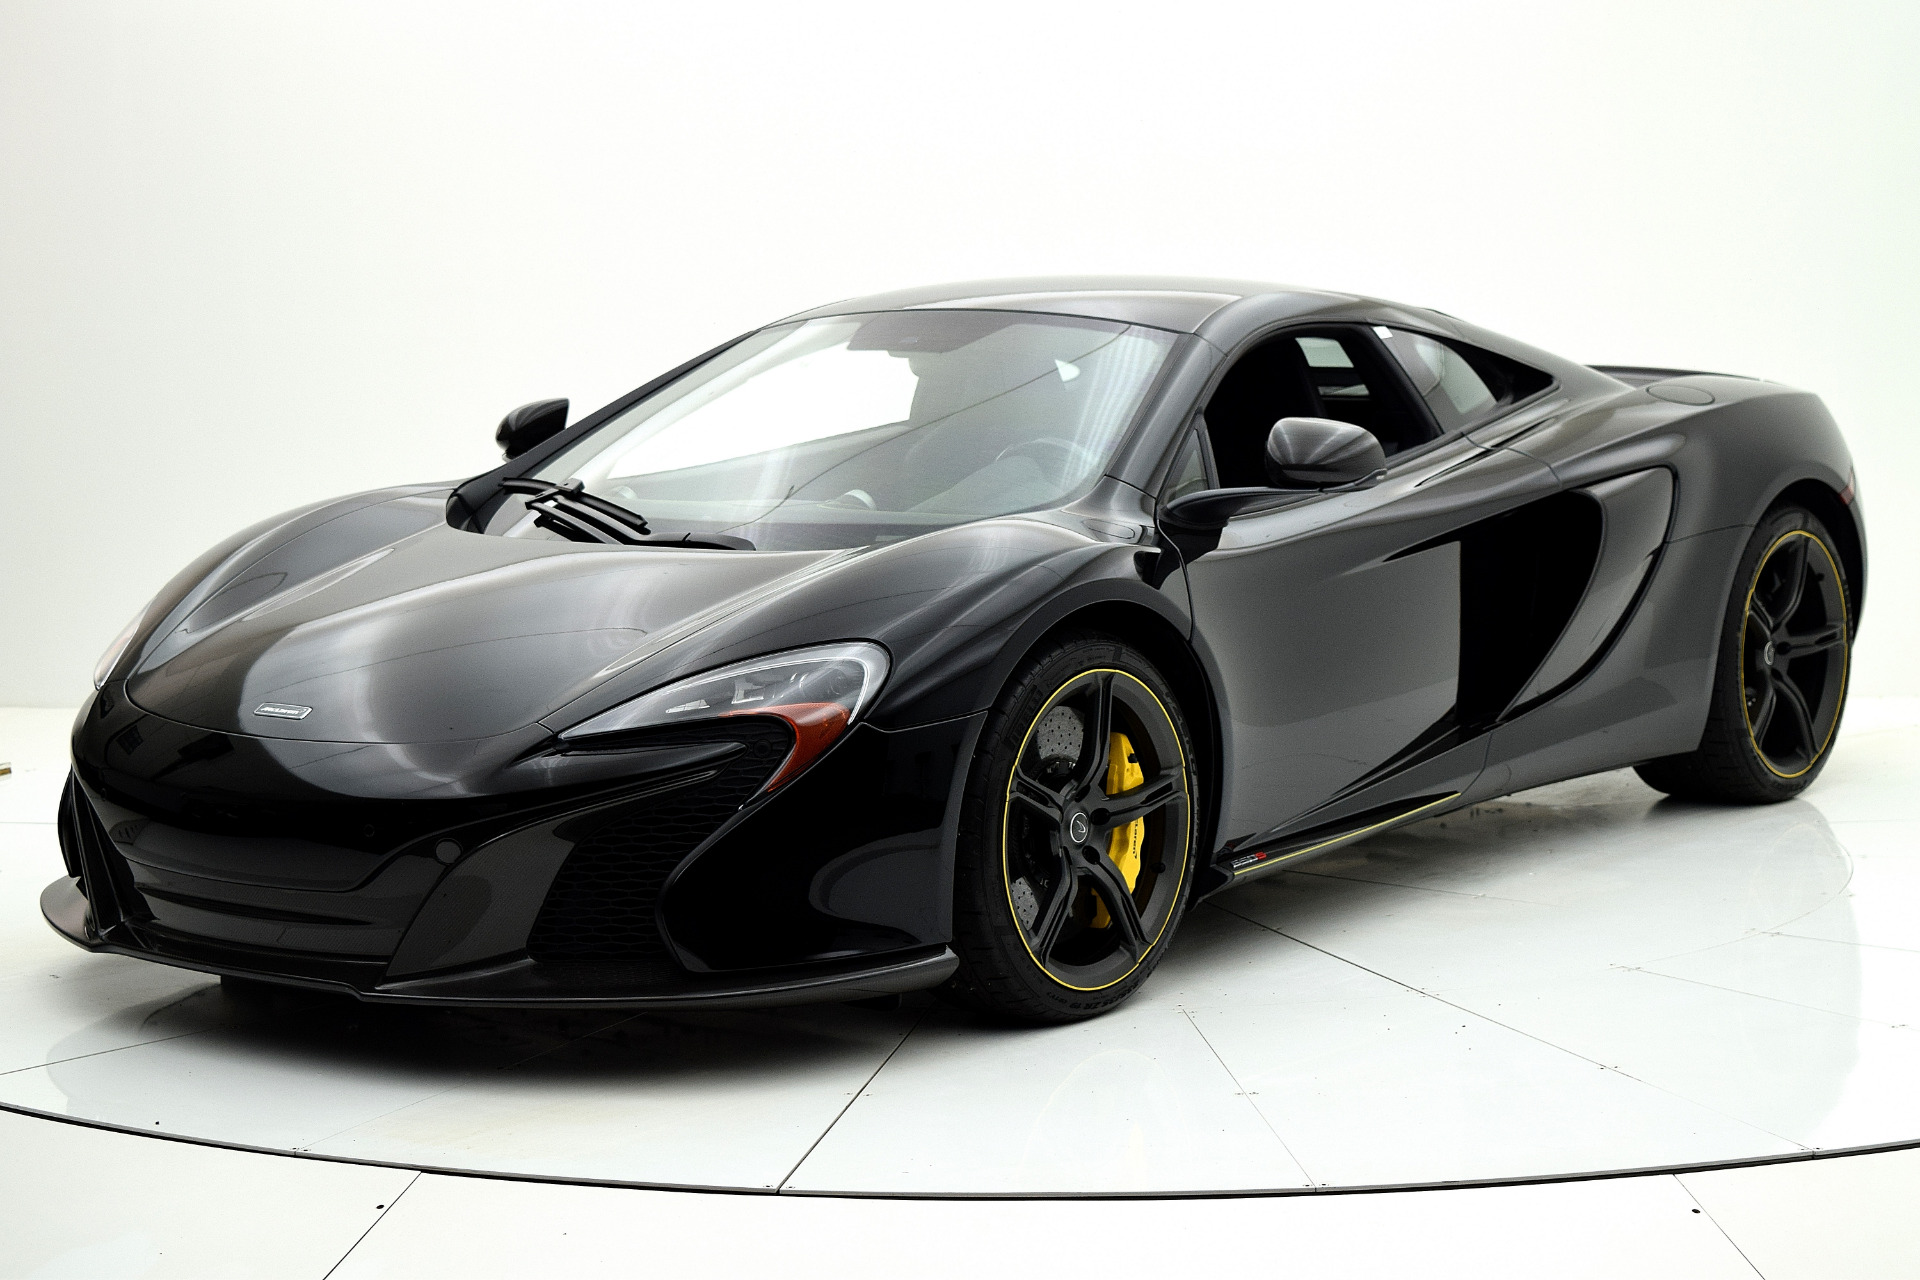 Used 2016 MCLAREN 650 S Coupe for sale $169,880 at F.C. Kerbeck Lamborghini Palmyra N.J. in Palmyra NJ 08065 2